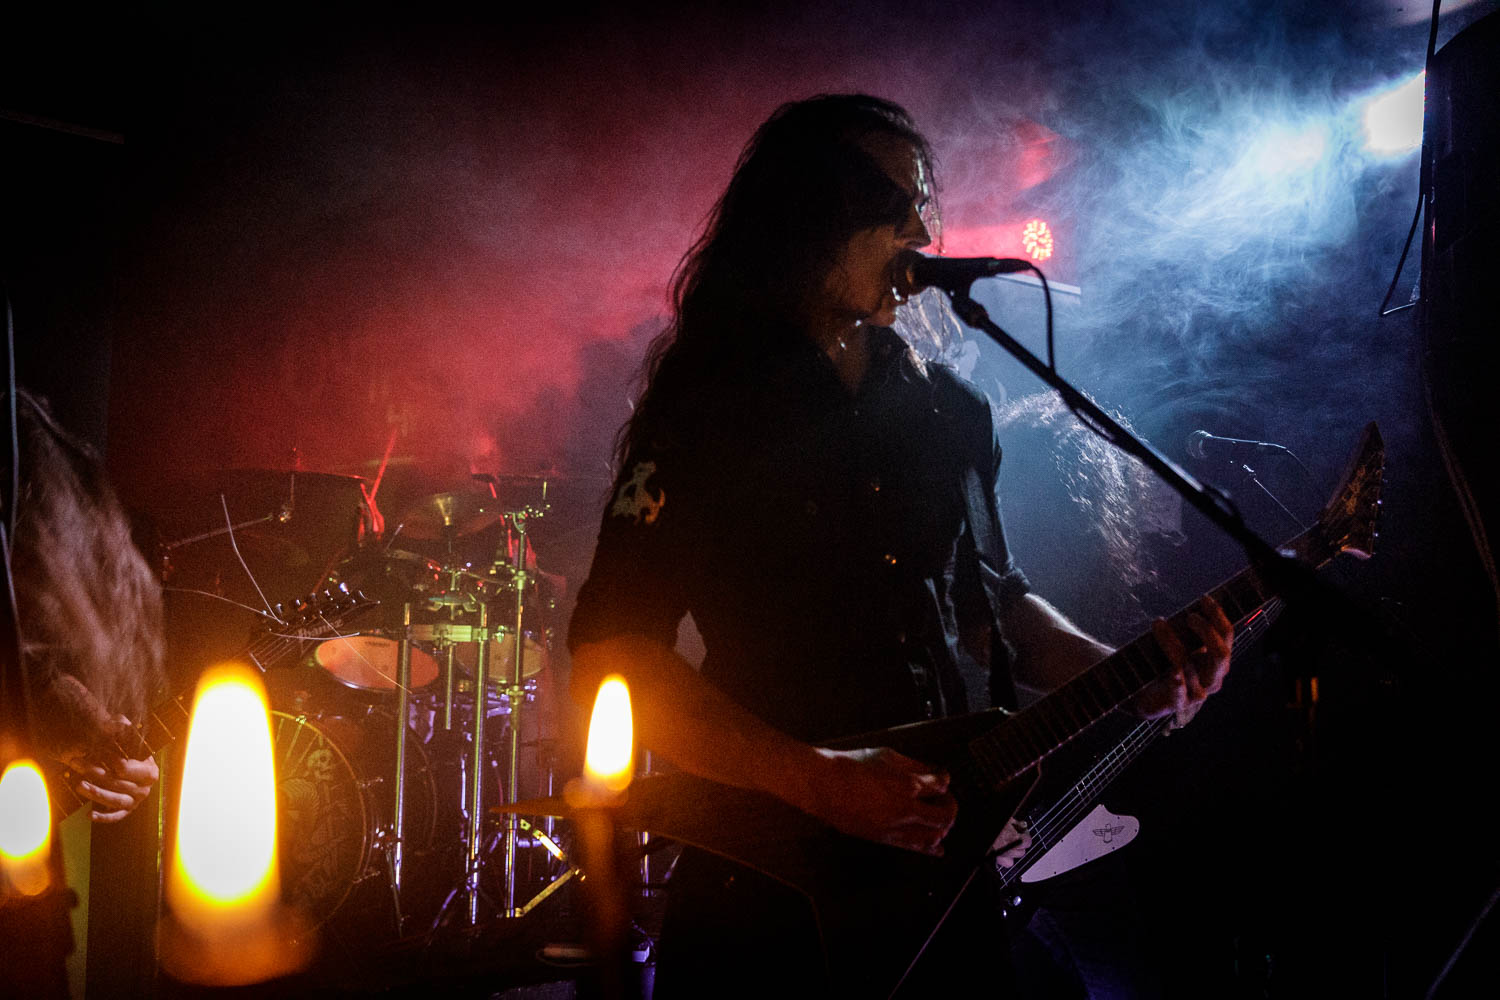 Necronautical at The Outpost in Liverpool on July 11th 2019